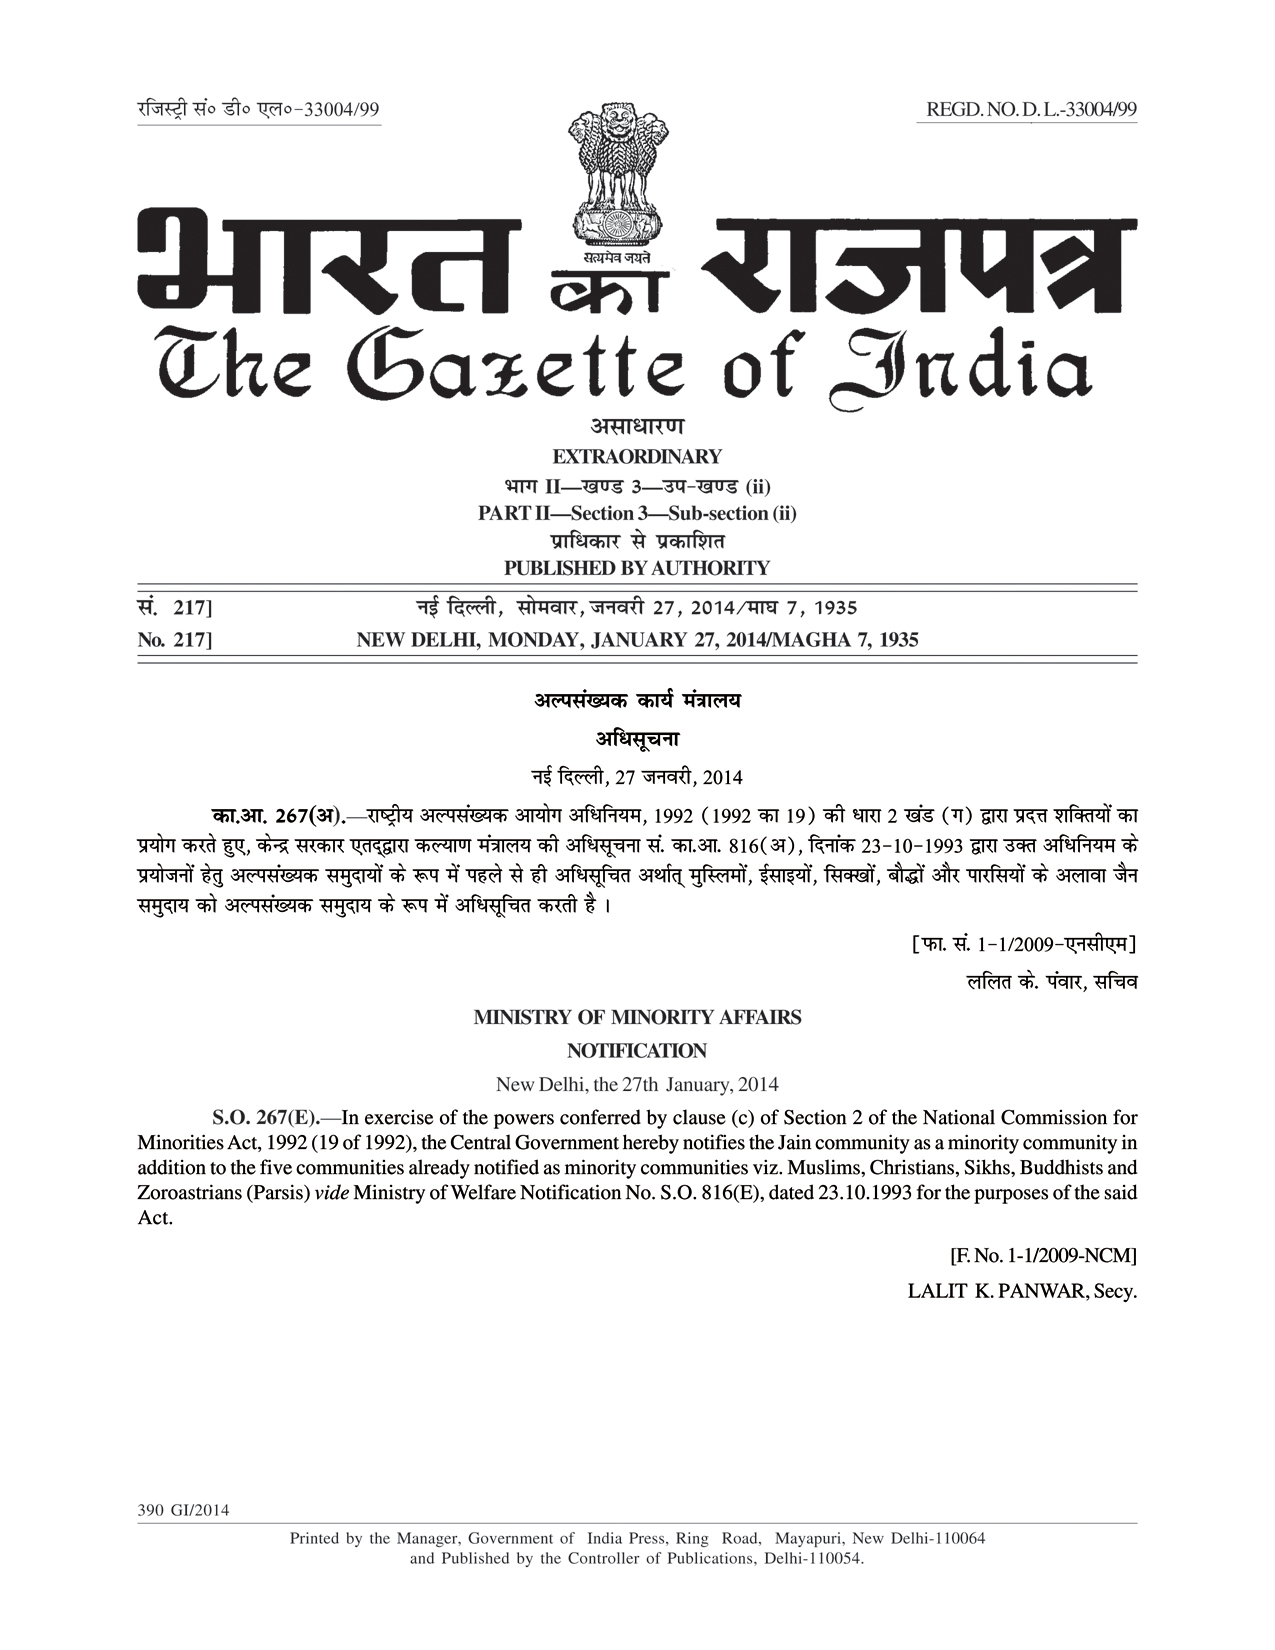 Gazette notification on Jain Community as a minority community